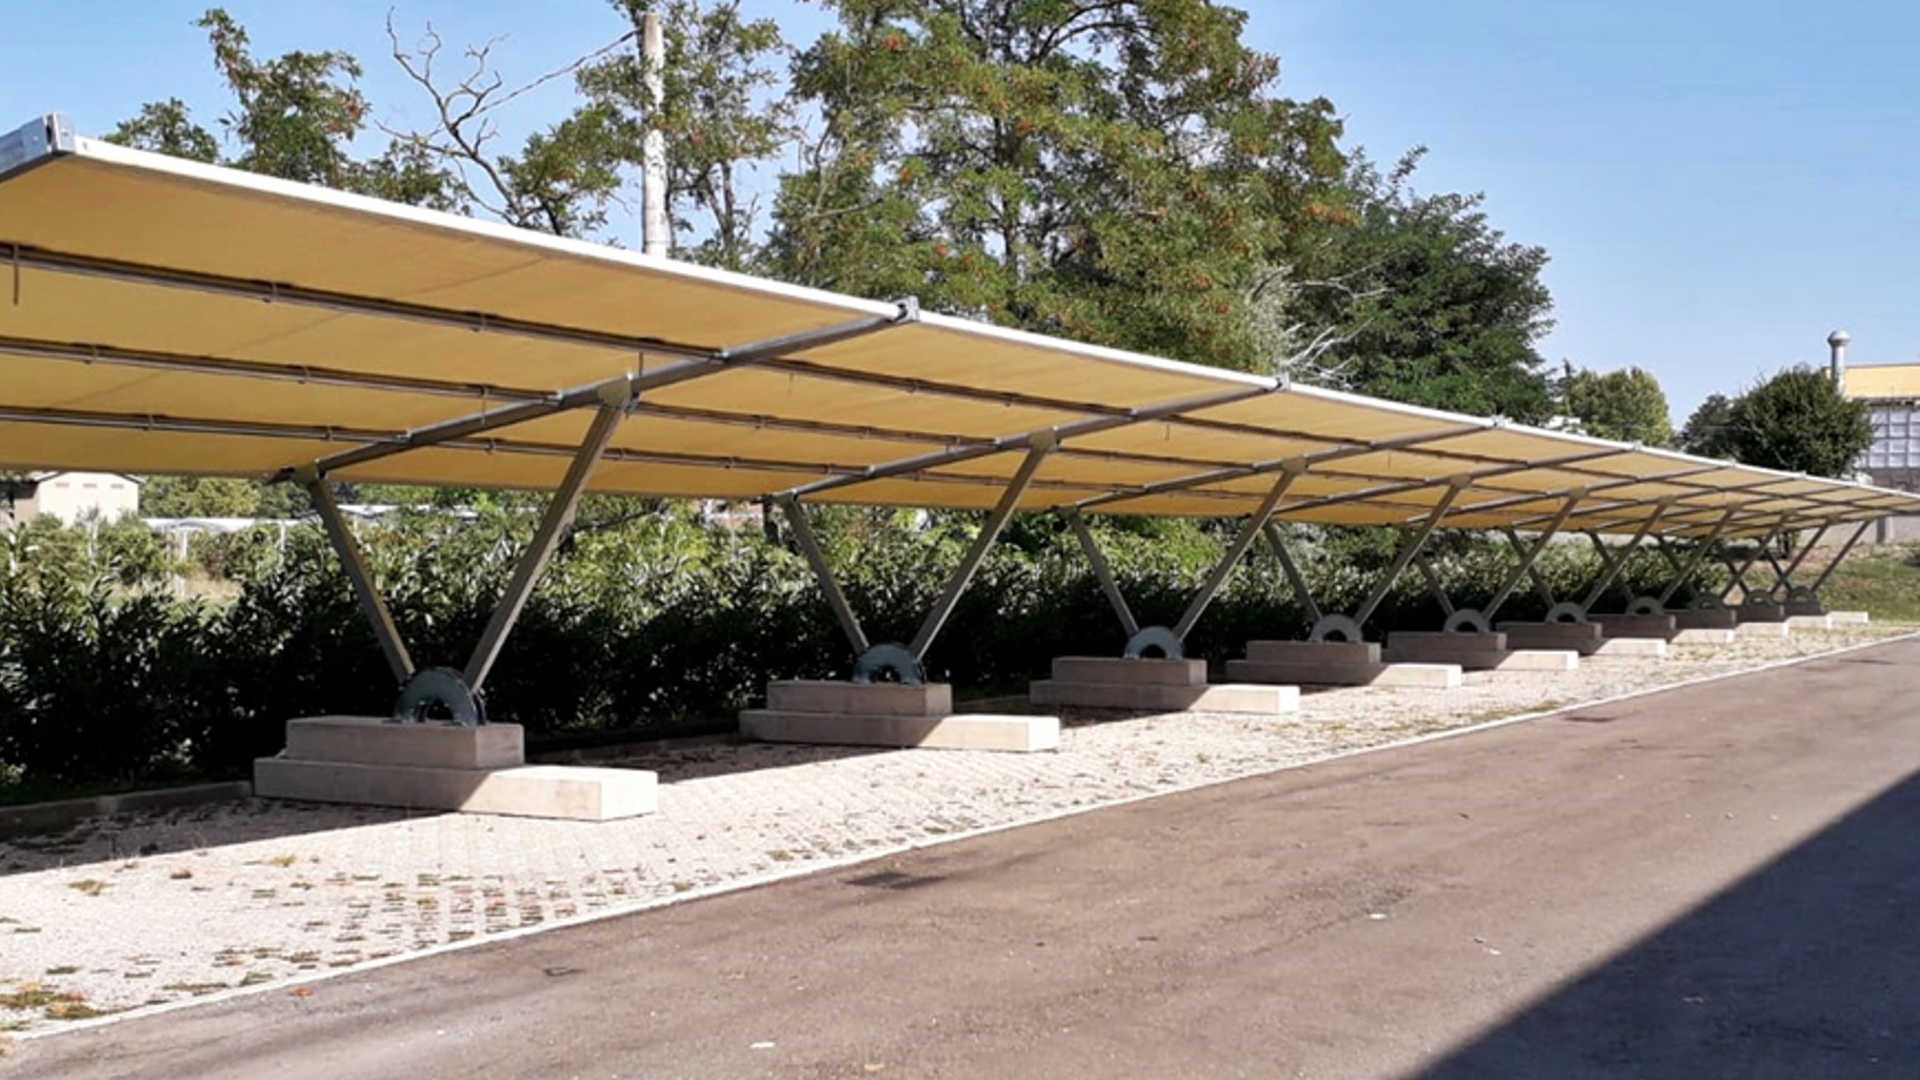 K-PARKING (carport su zavorre)